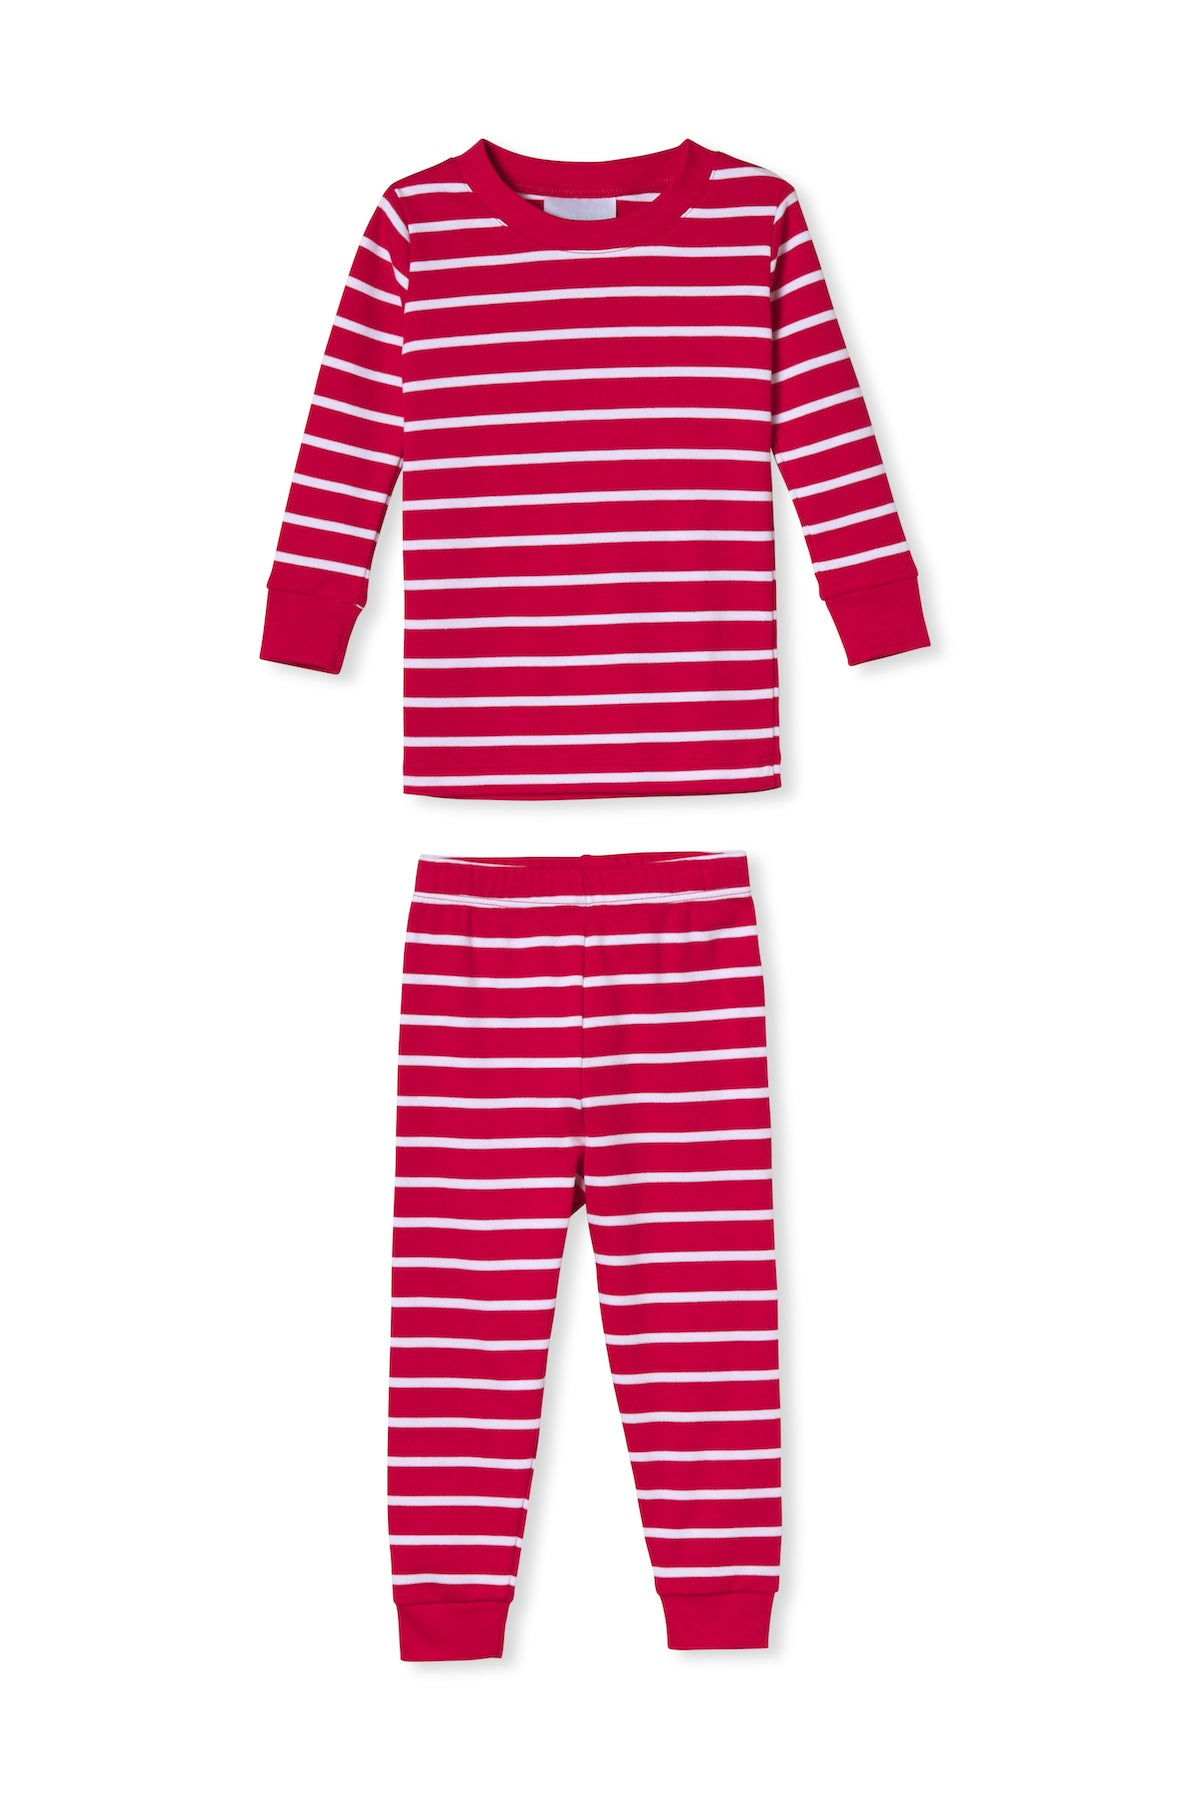 Kids Long-Long Set in Cherry